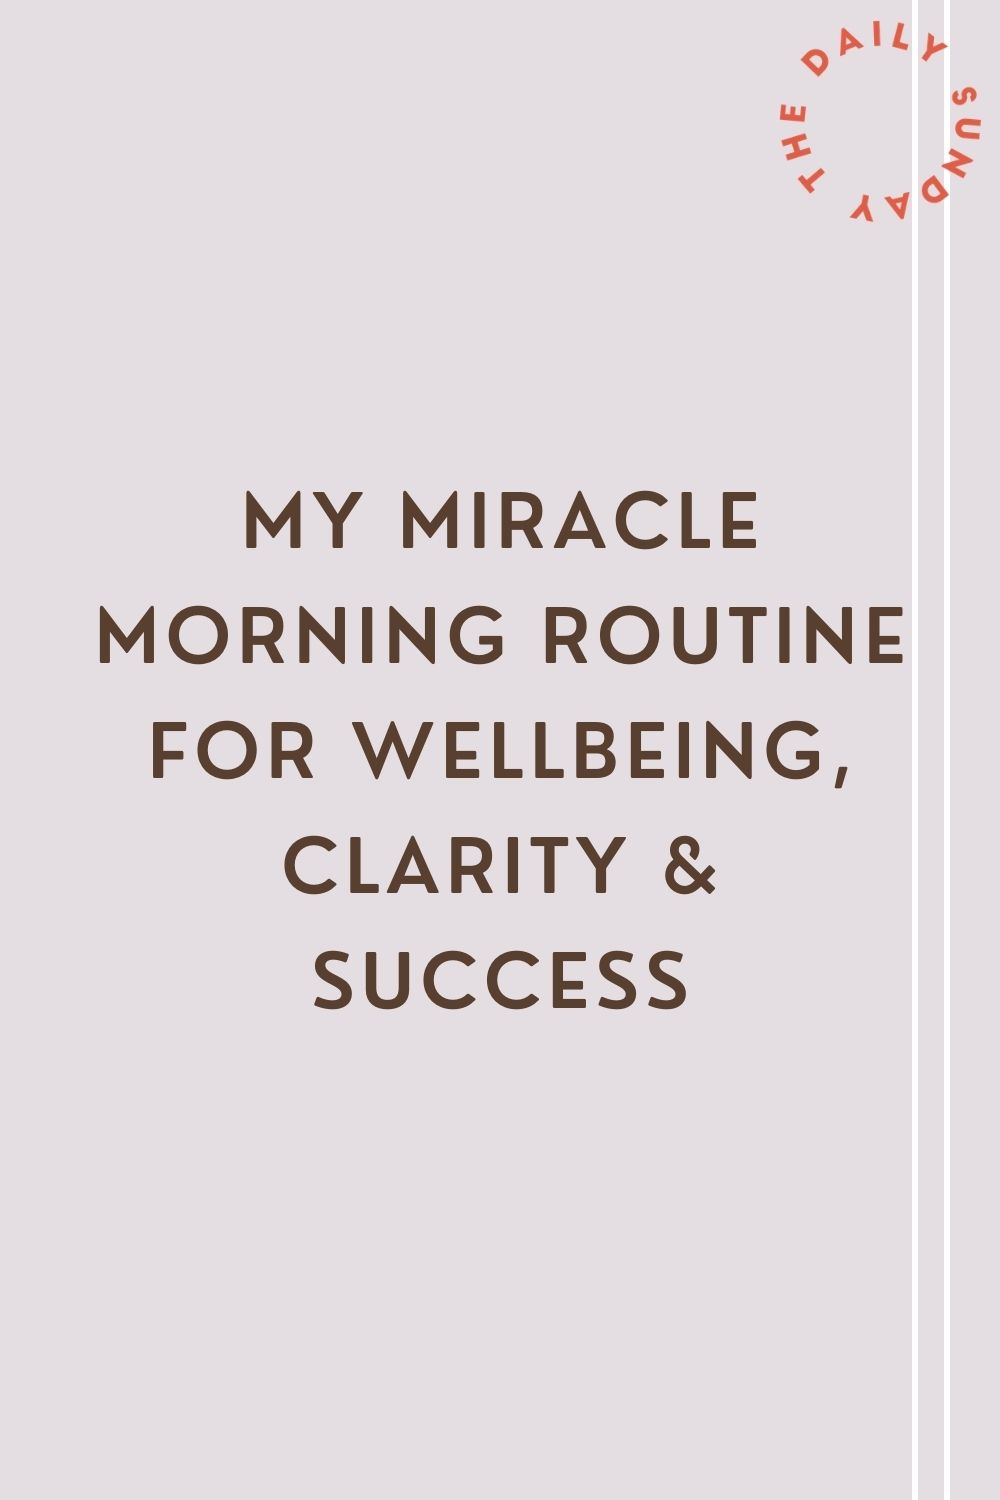 Miracle morning routine for wellbeing, clarity & success